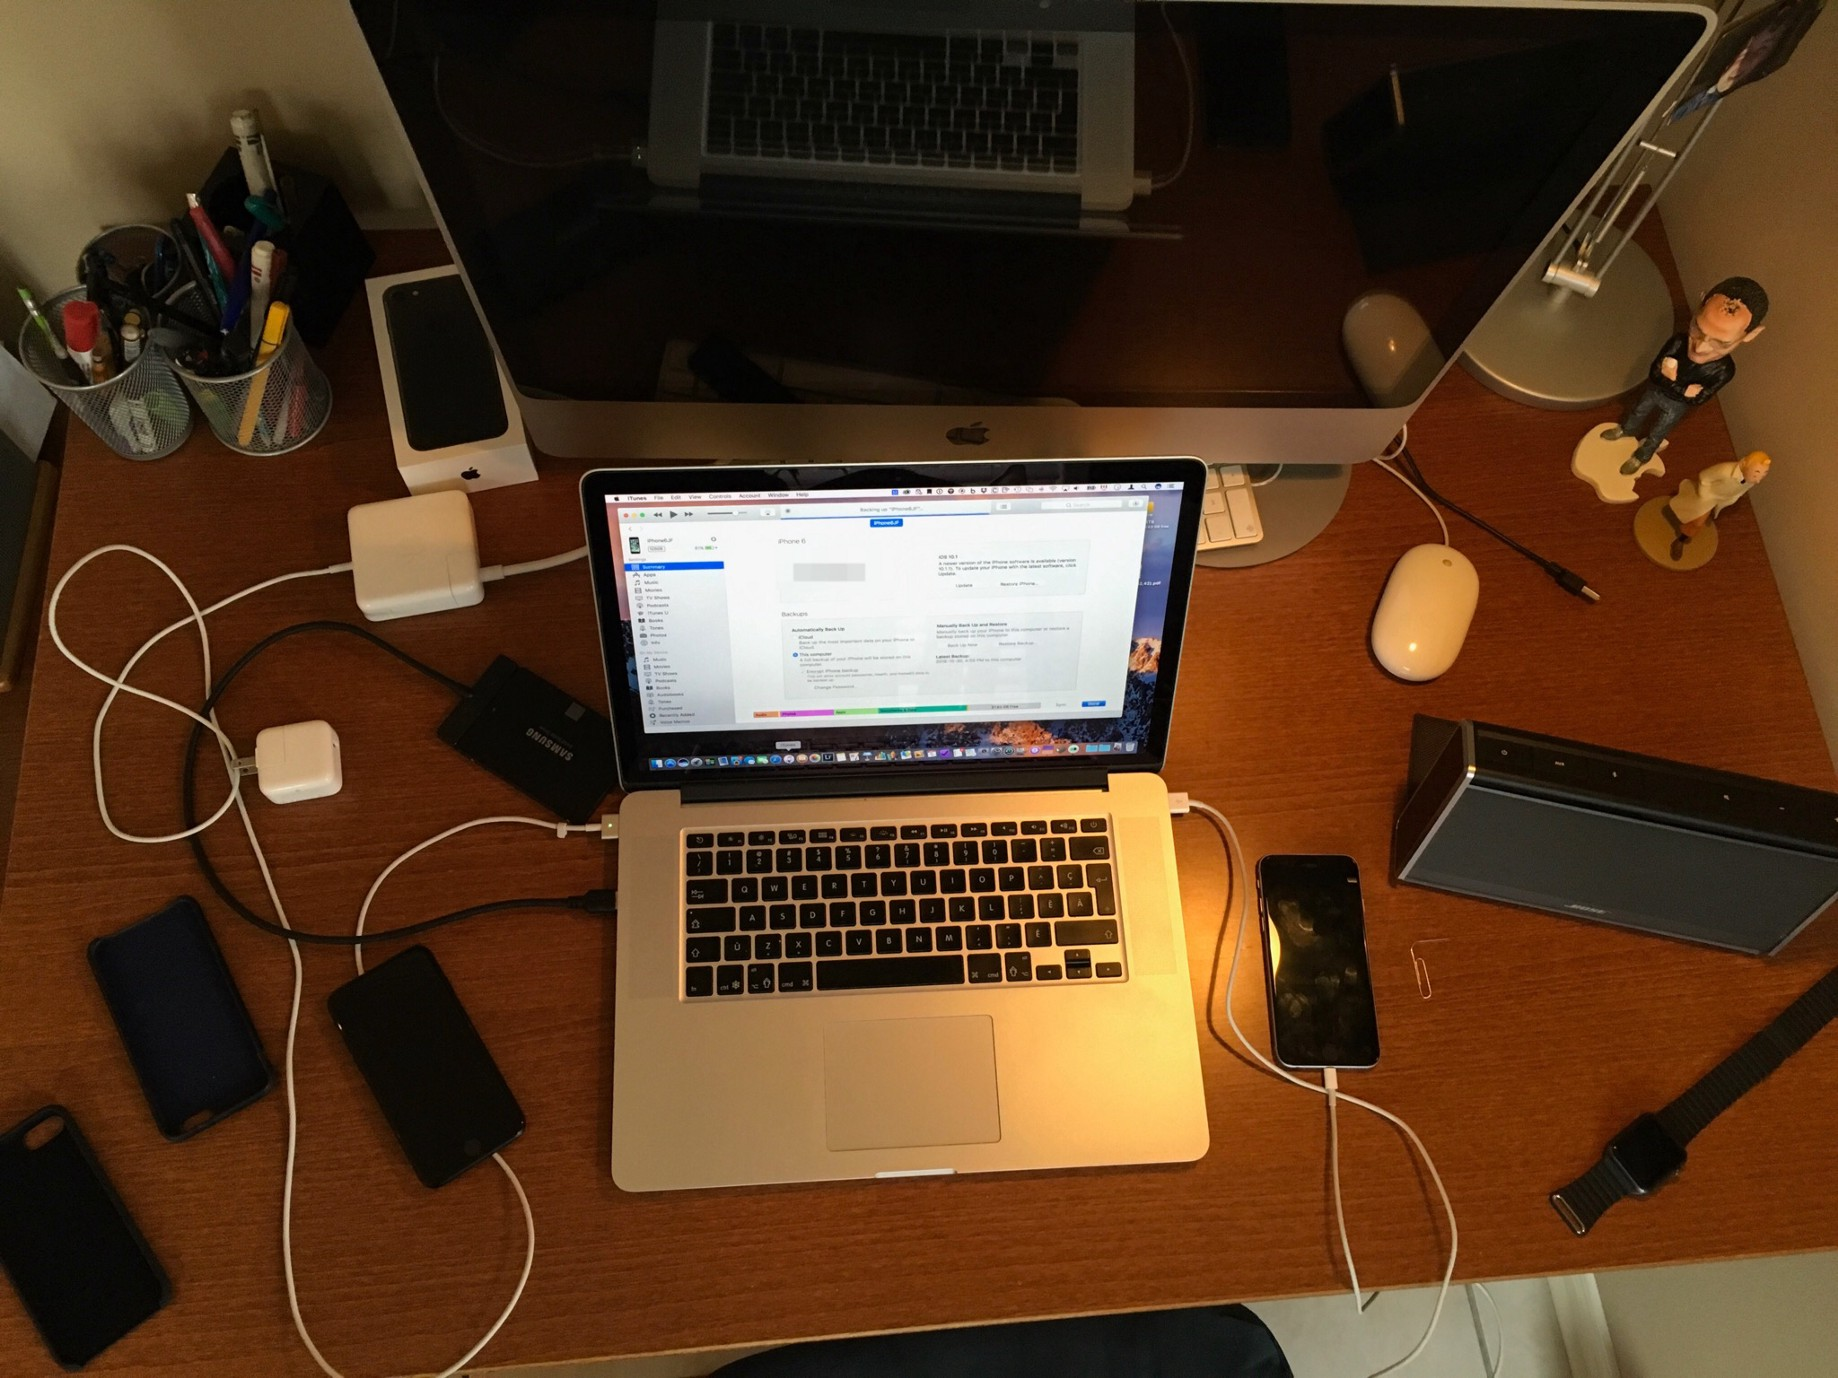 The ABC…YZ of moving from an iPhone 6 to a brand new iPhone 7